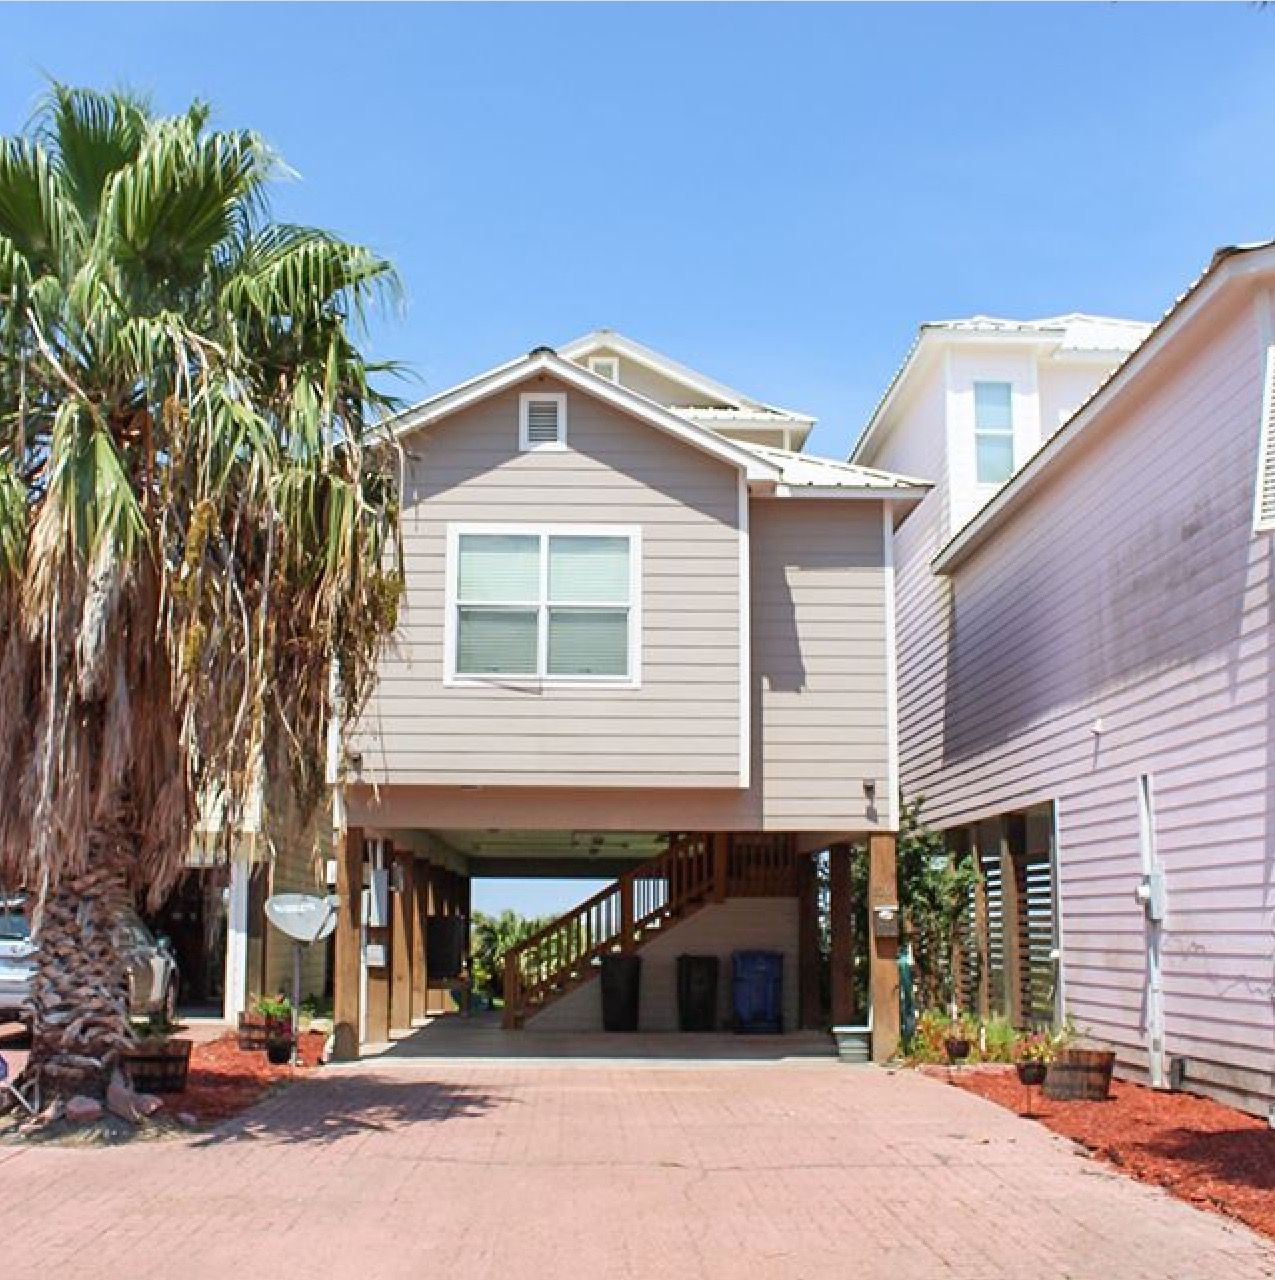 110 Clement Cove in Port Lavaca, TX🐠 | Waterfront homes, Ingleside, Beach  living